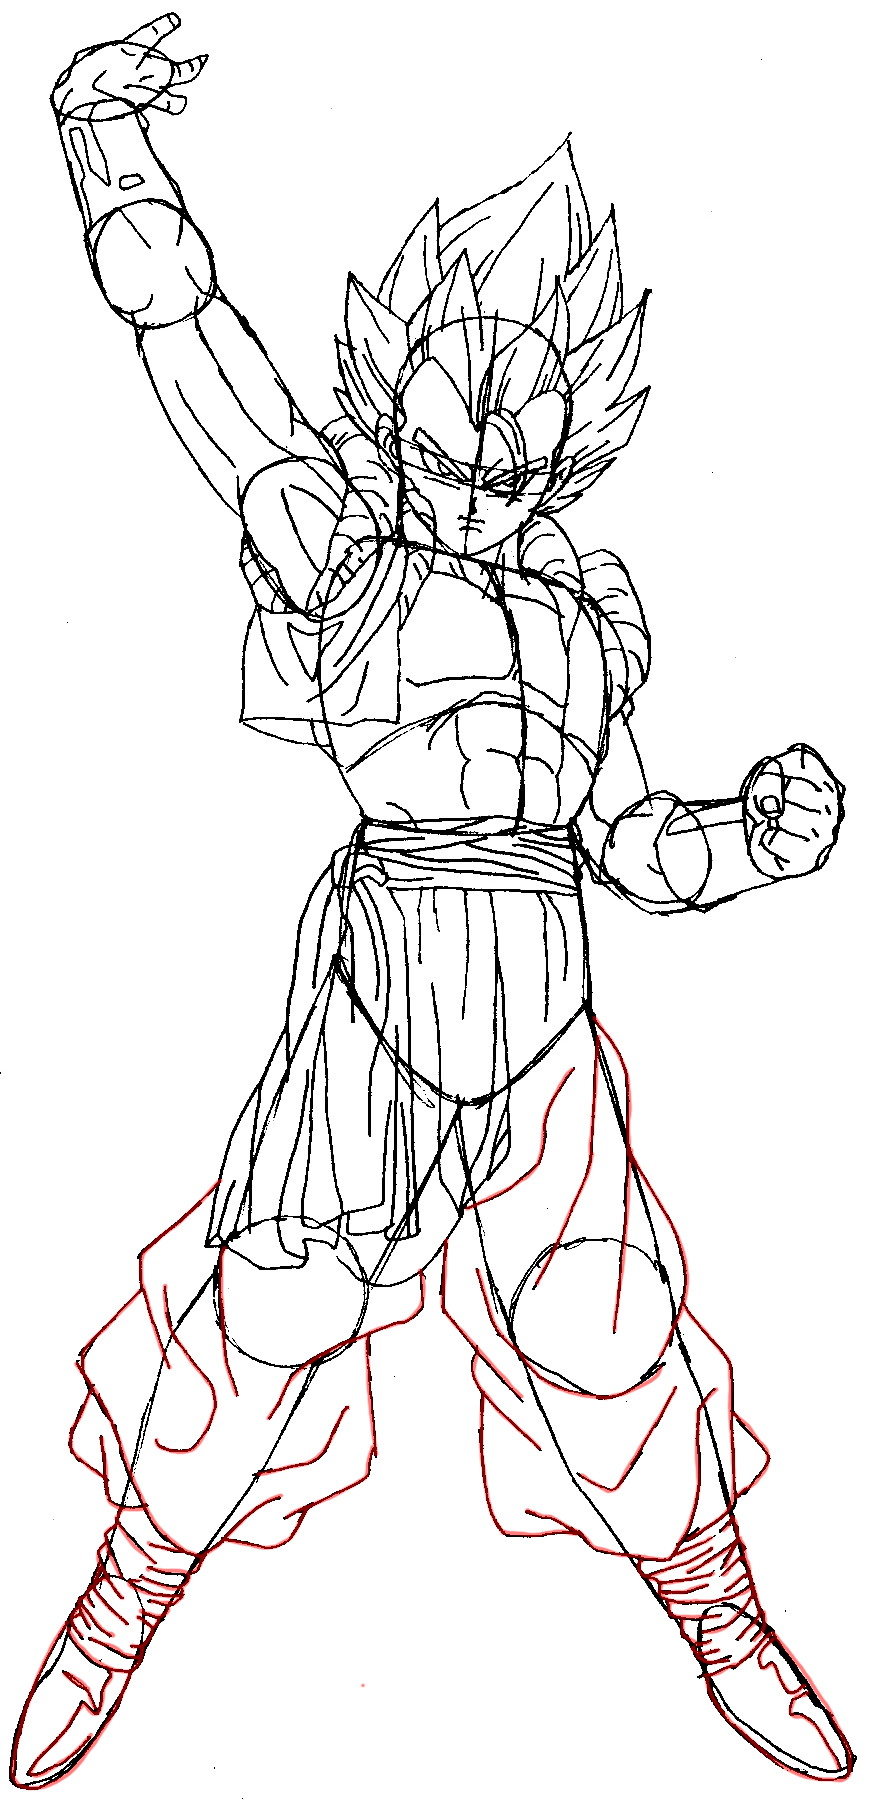 How To Draw Gogeta From Dragon Ball Z In Easy Steps Tutorial How